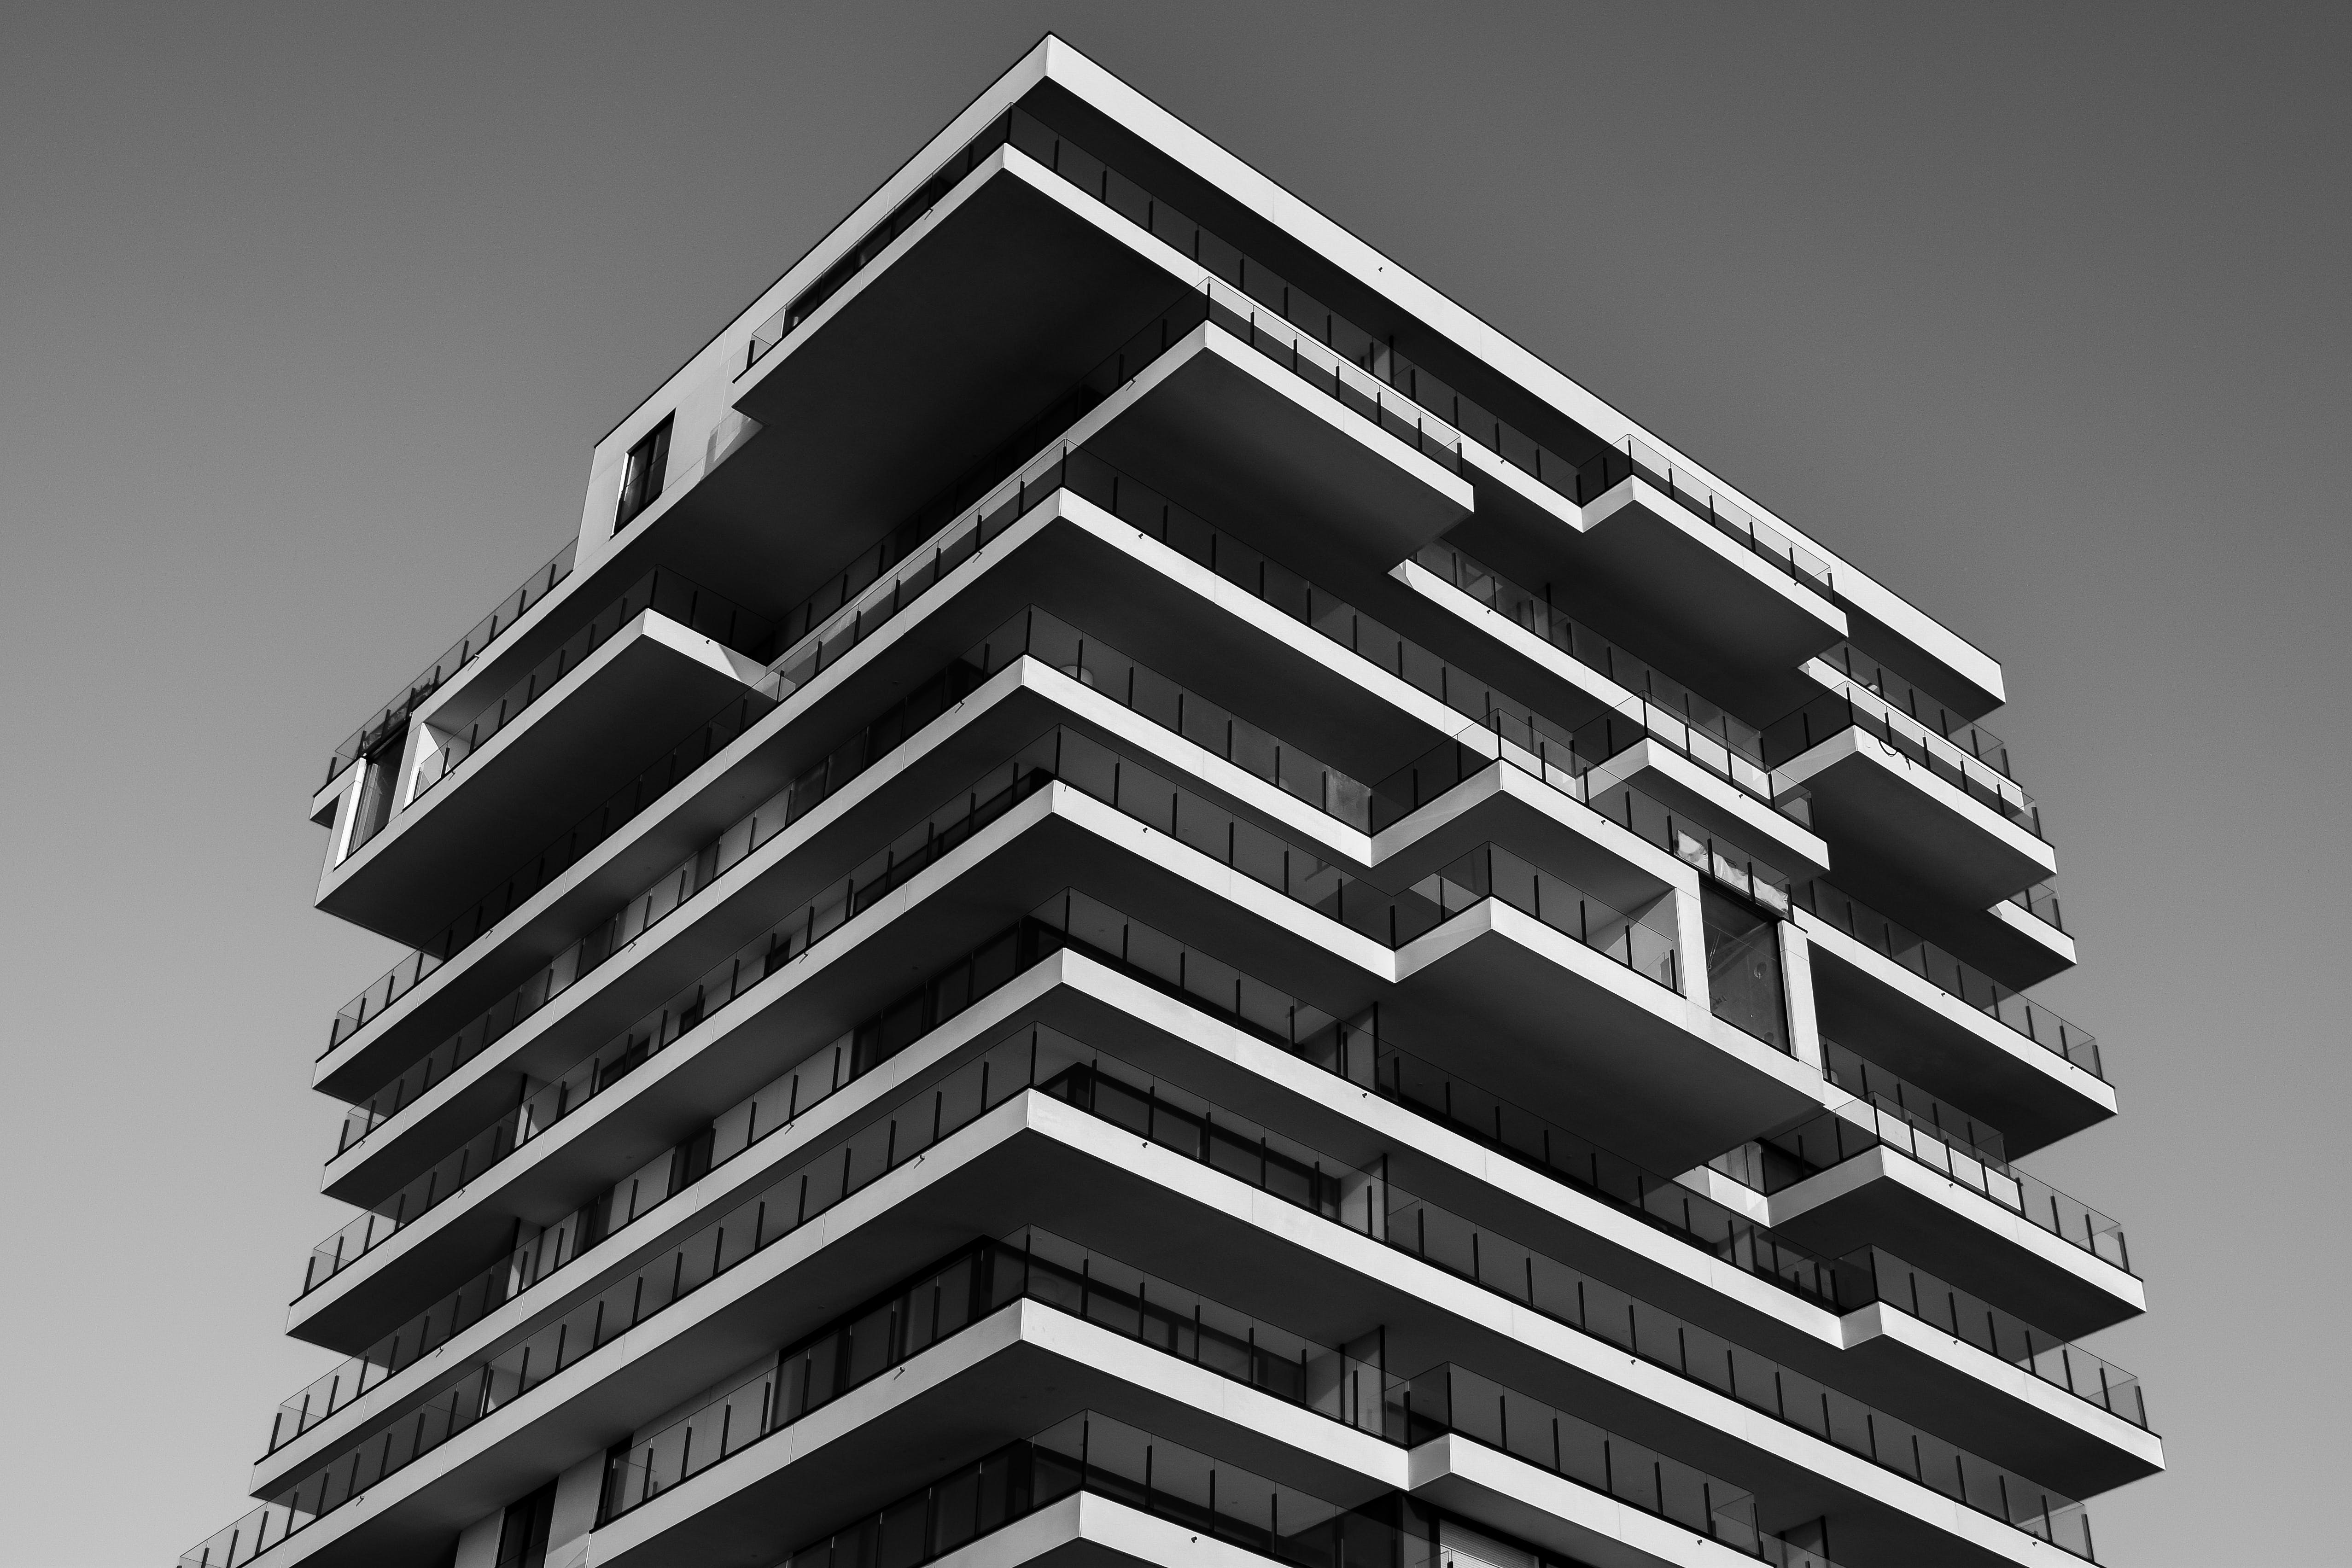 Grayscale Photo of Concrete Building